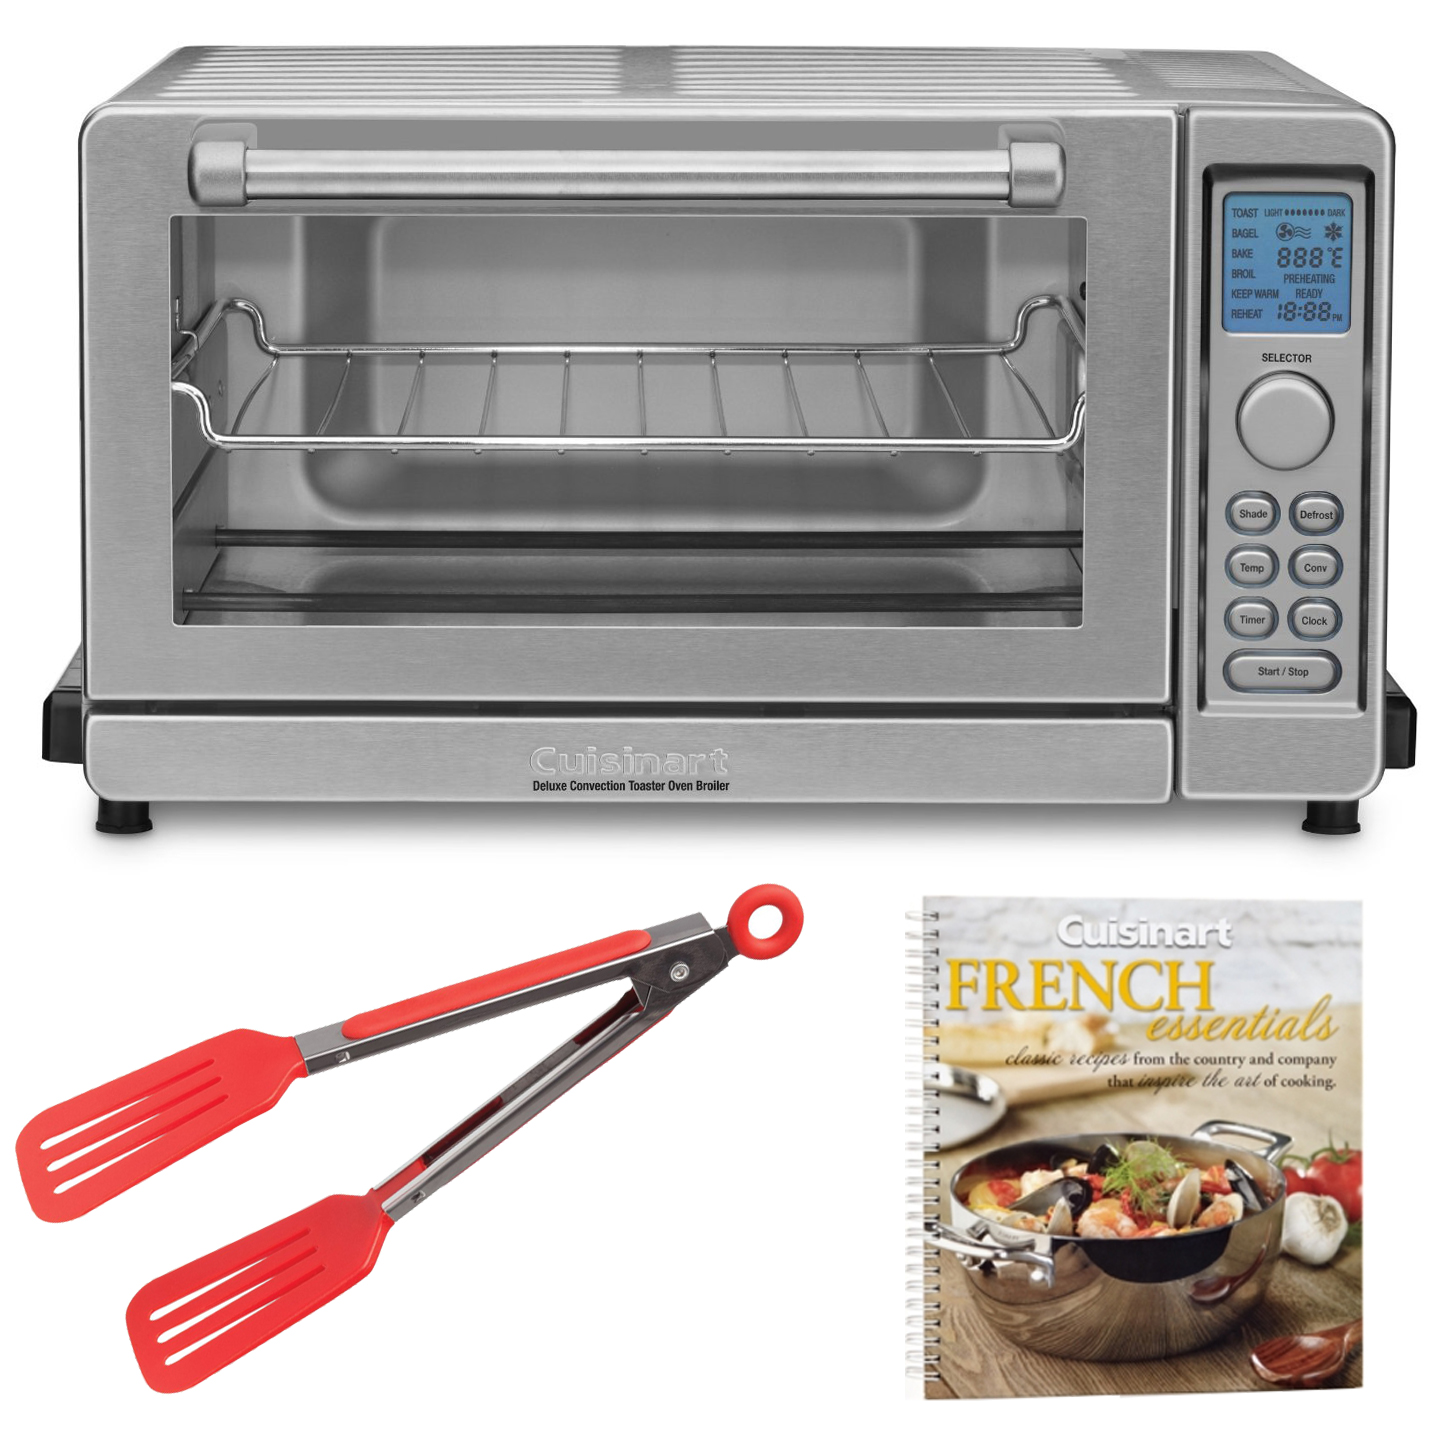 Cuisinart Rotisserie Convection Toaster Oven Tob 200